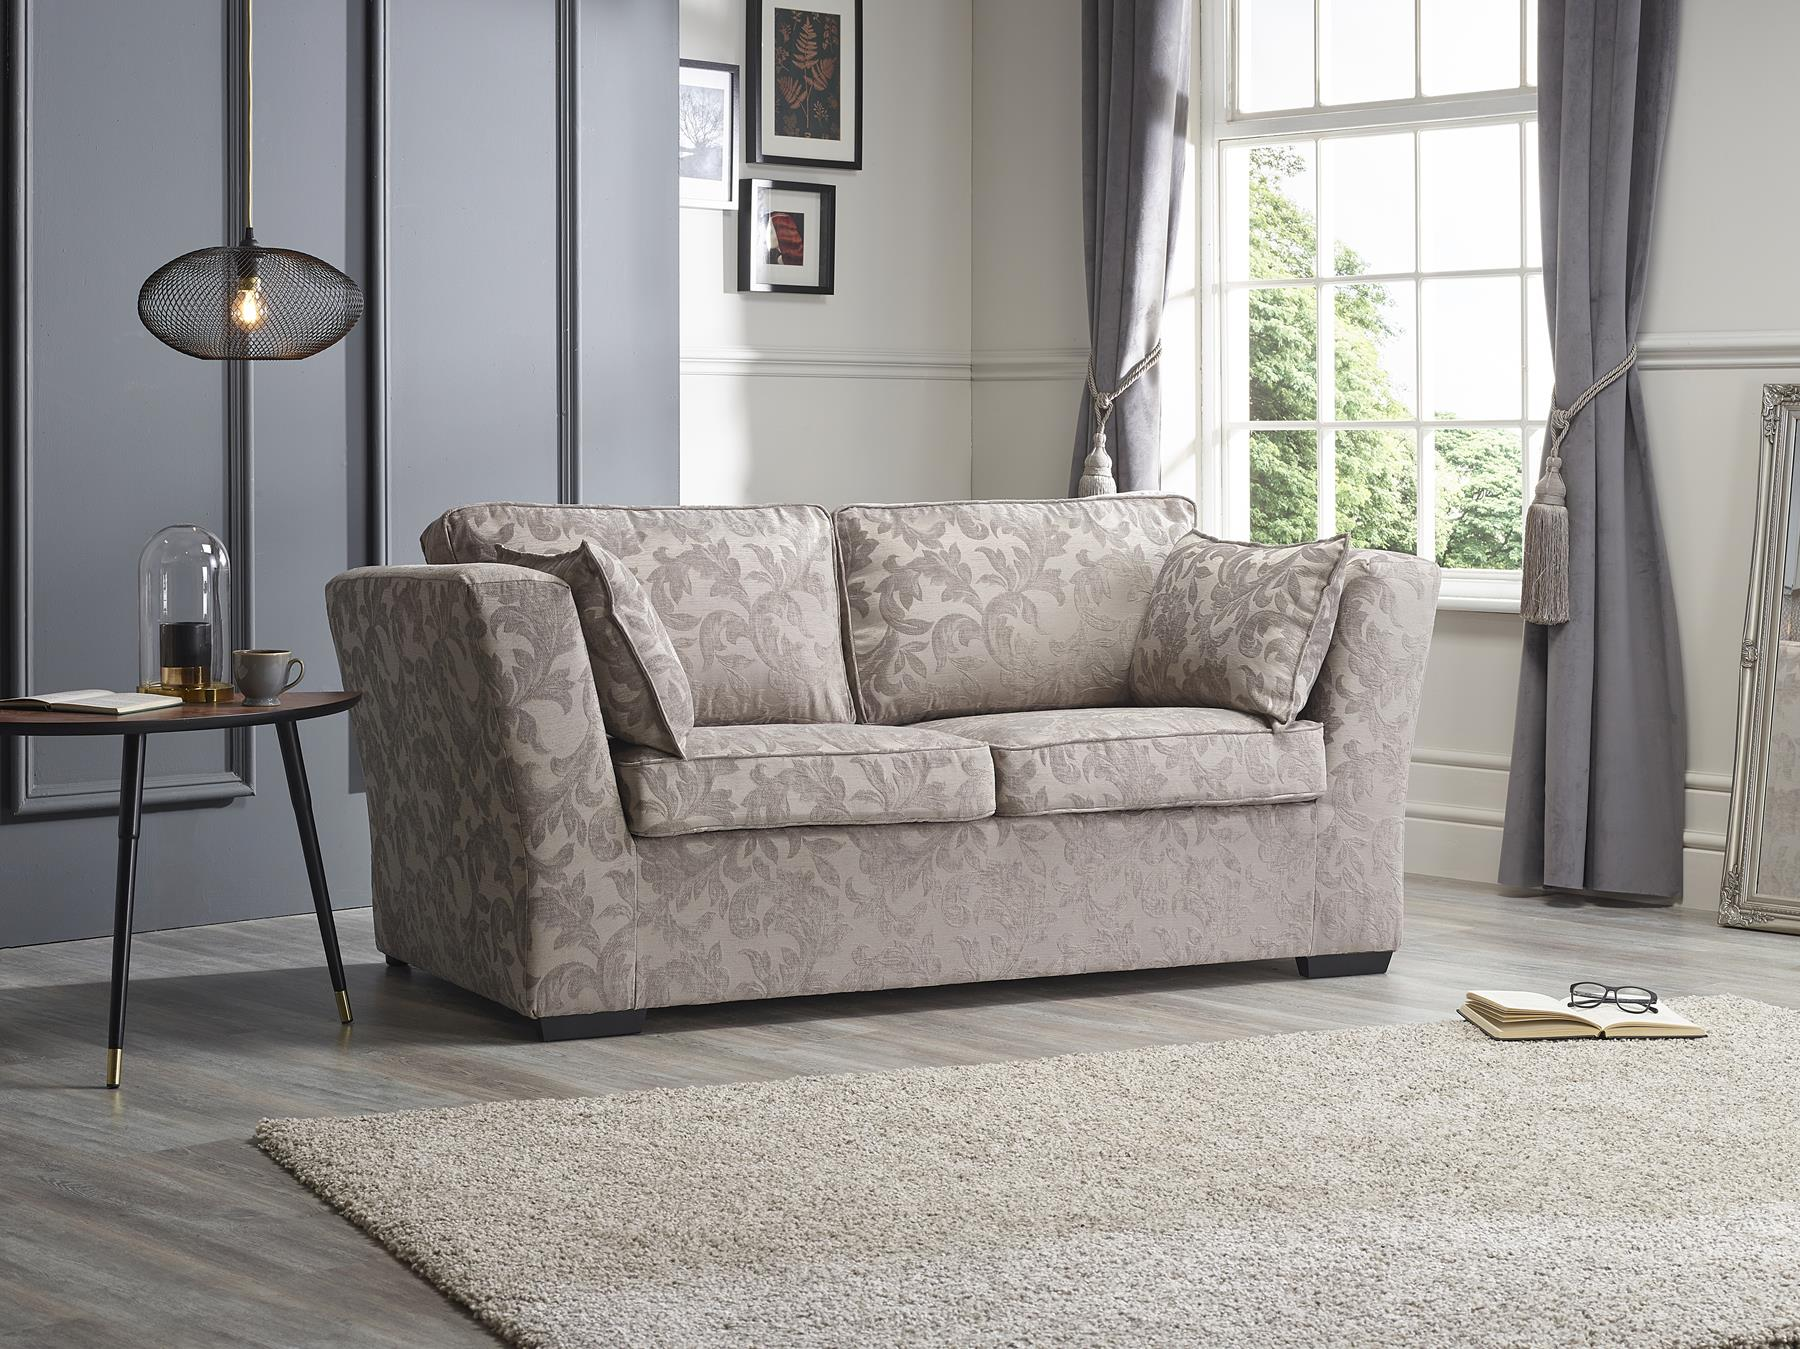 Trade Enquiries Sofabed Co Uk